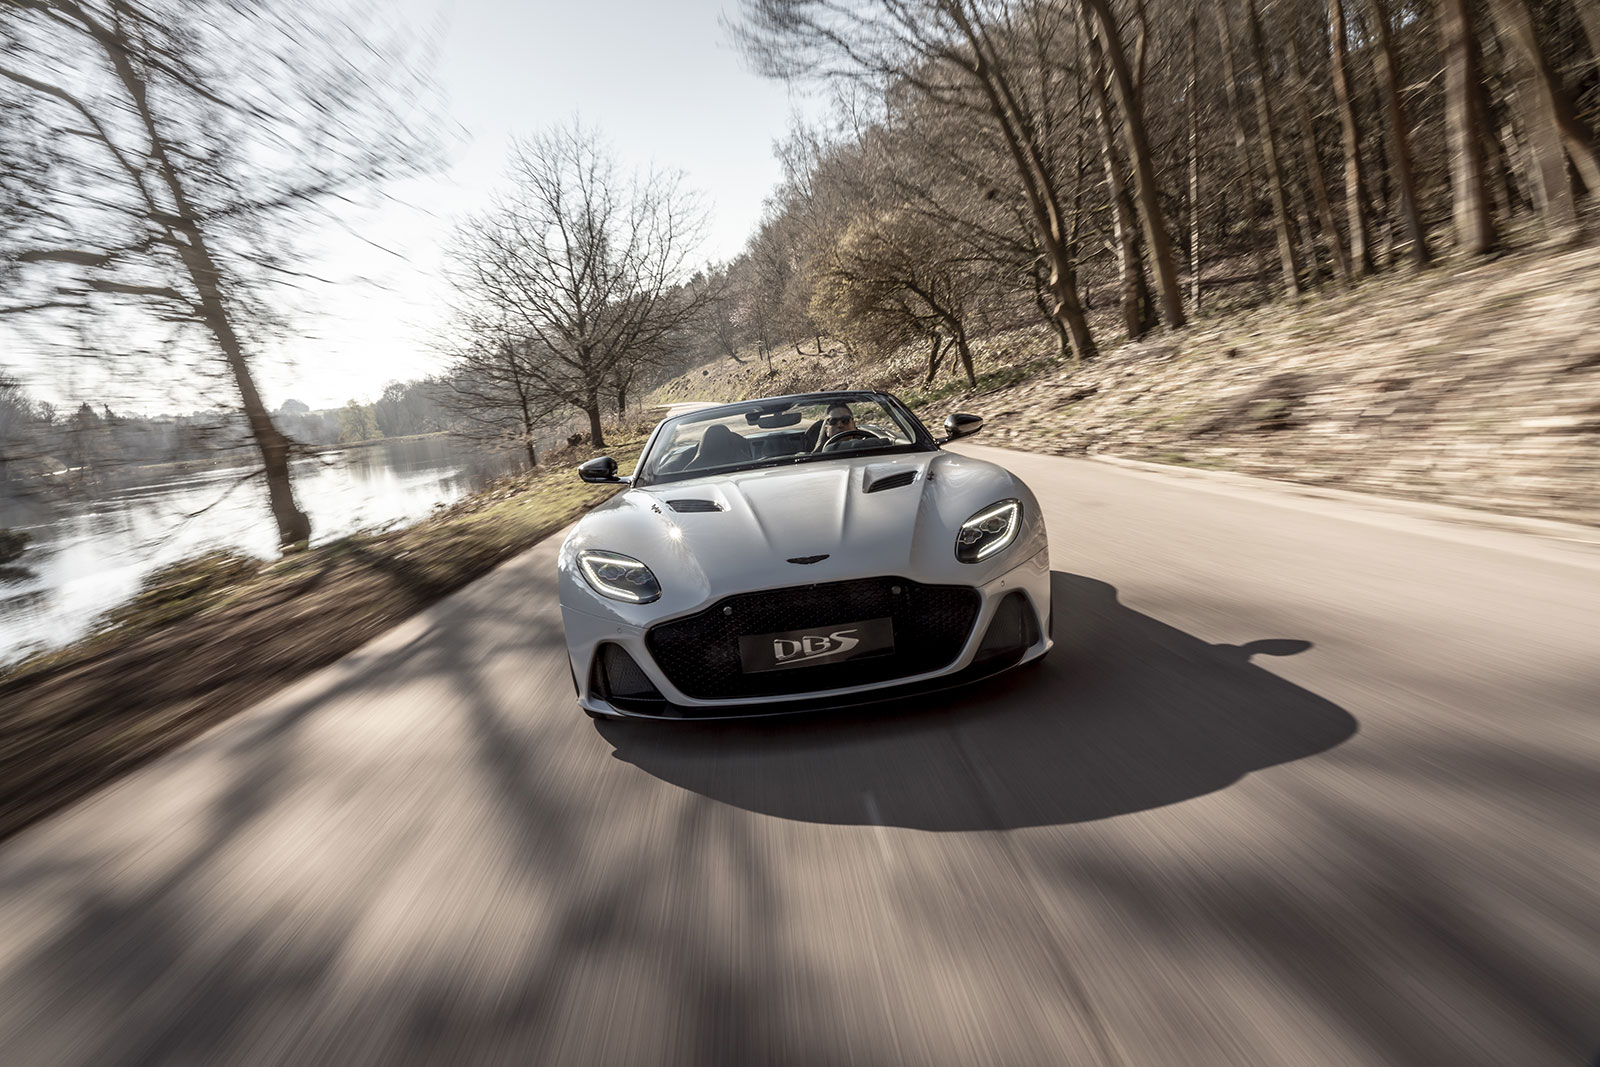 Aston Martin DBS Superleggera Volante - The Ulimate Open Top GT image 7